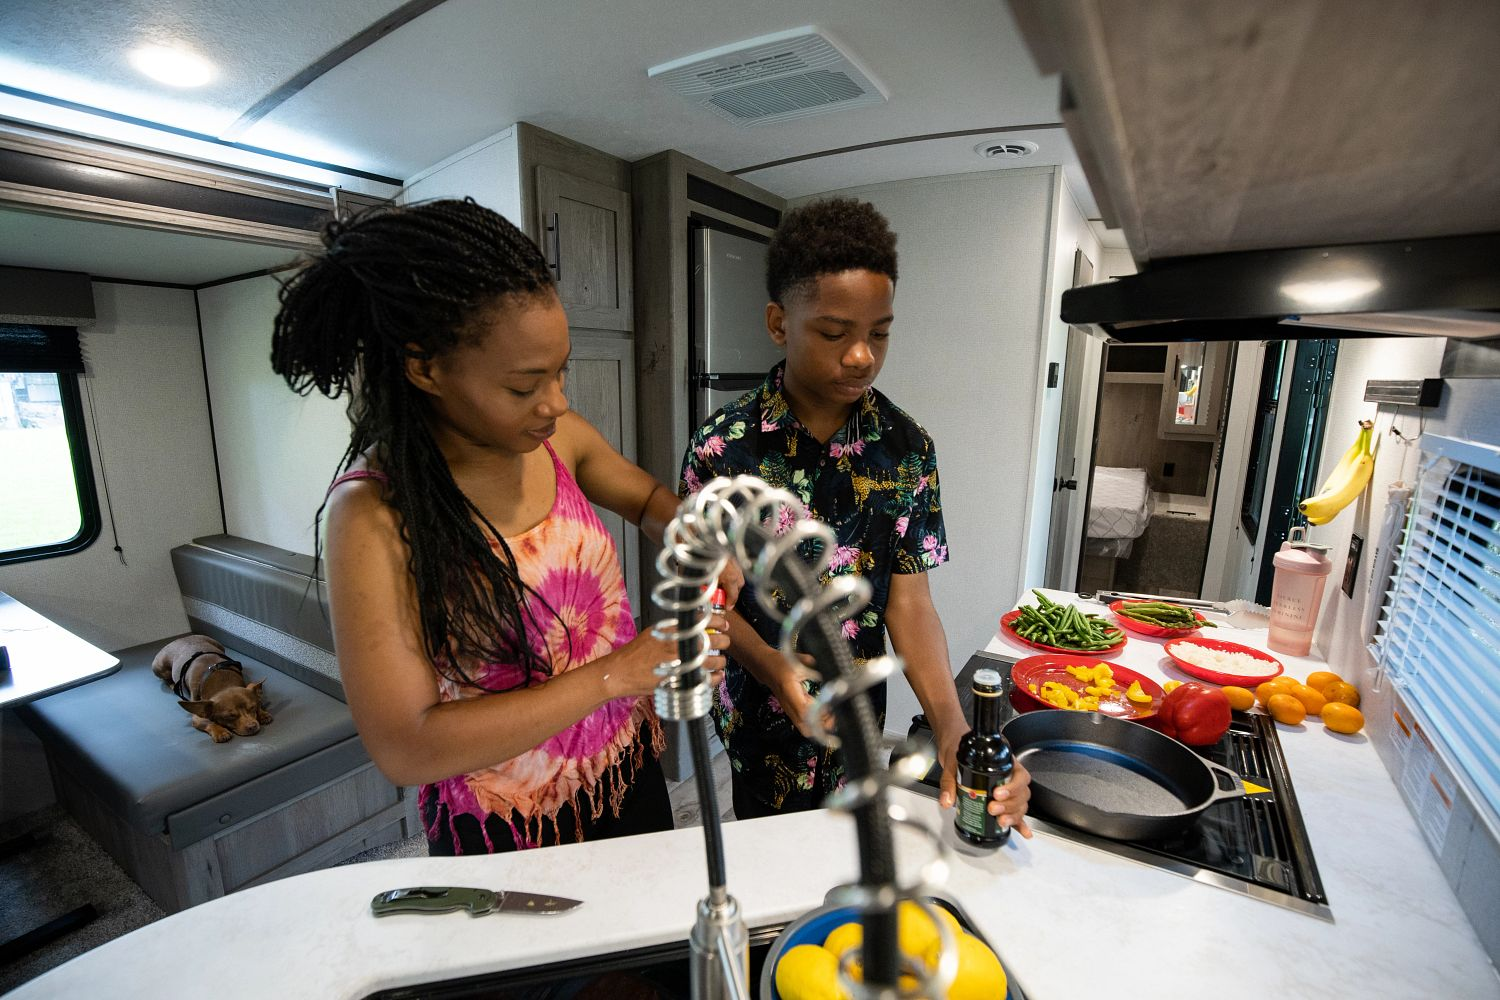 cooking home meals in RV kitchen